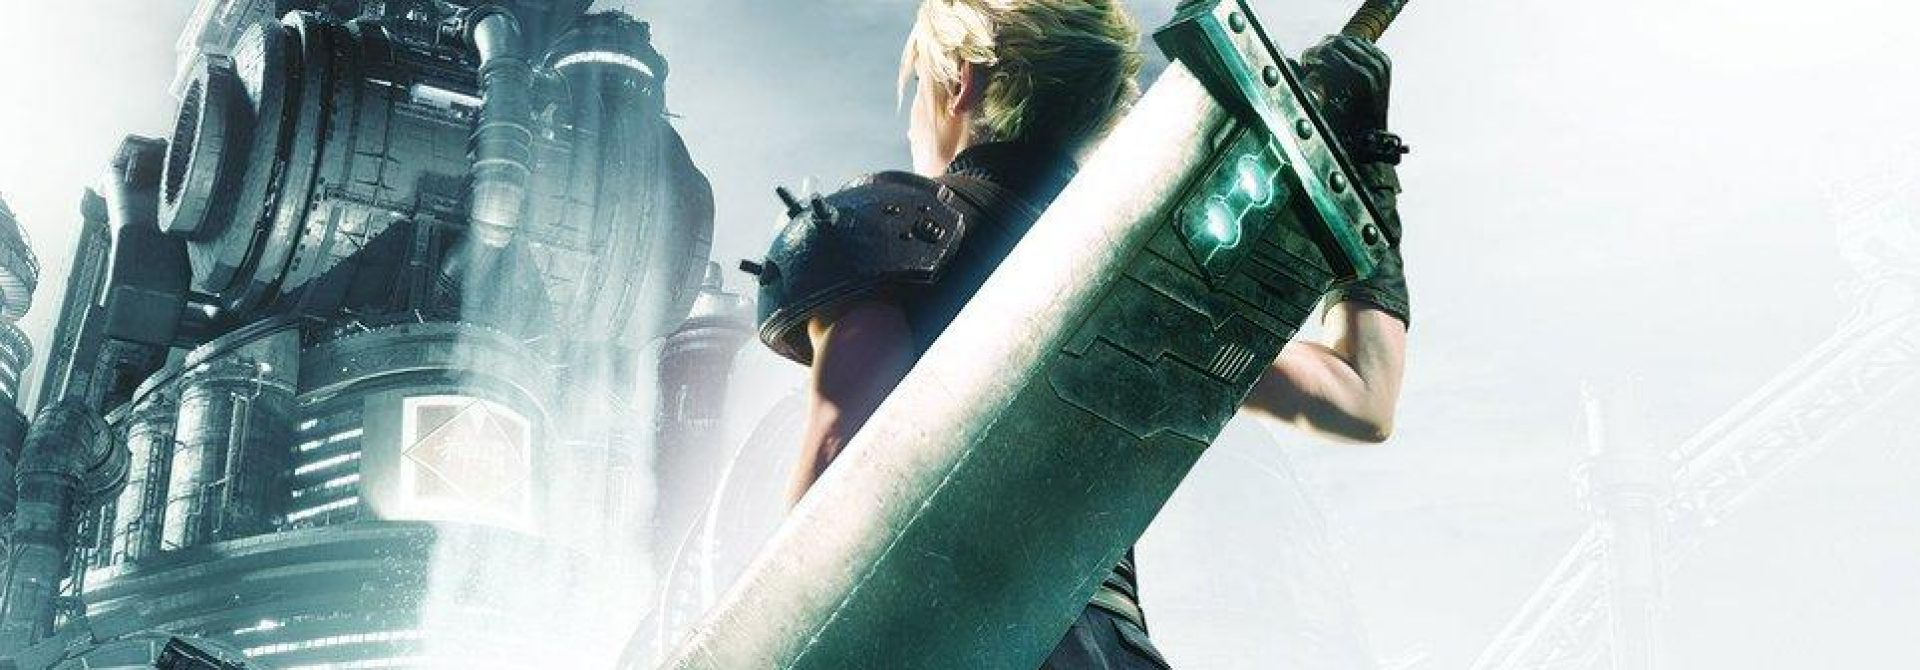 Final Fantasy 7 Remake Delayed Until April 10